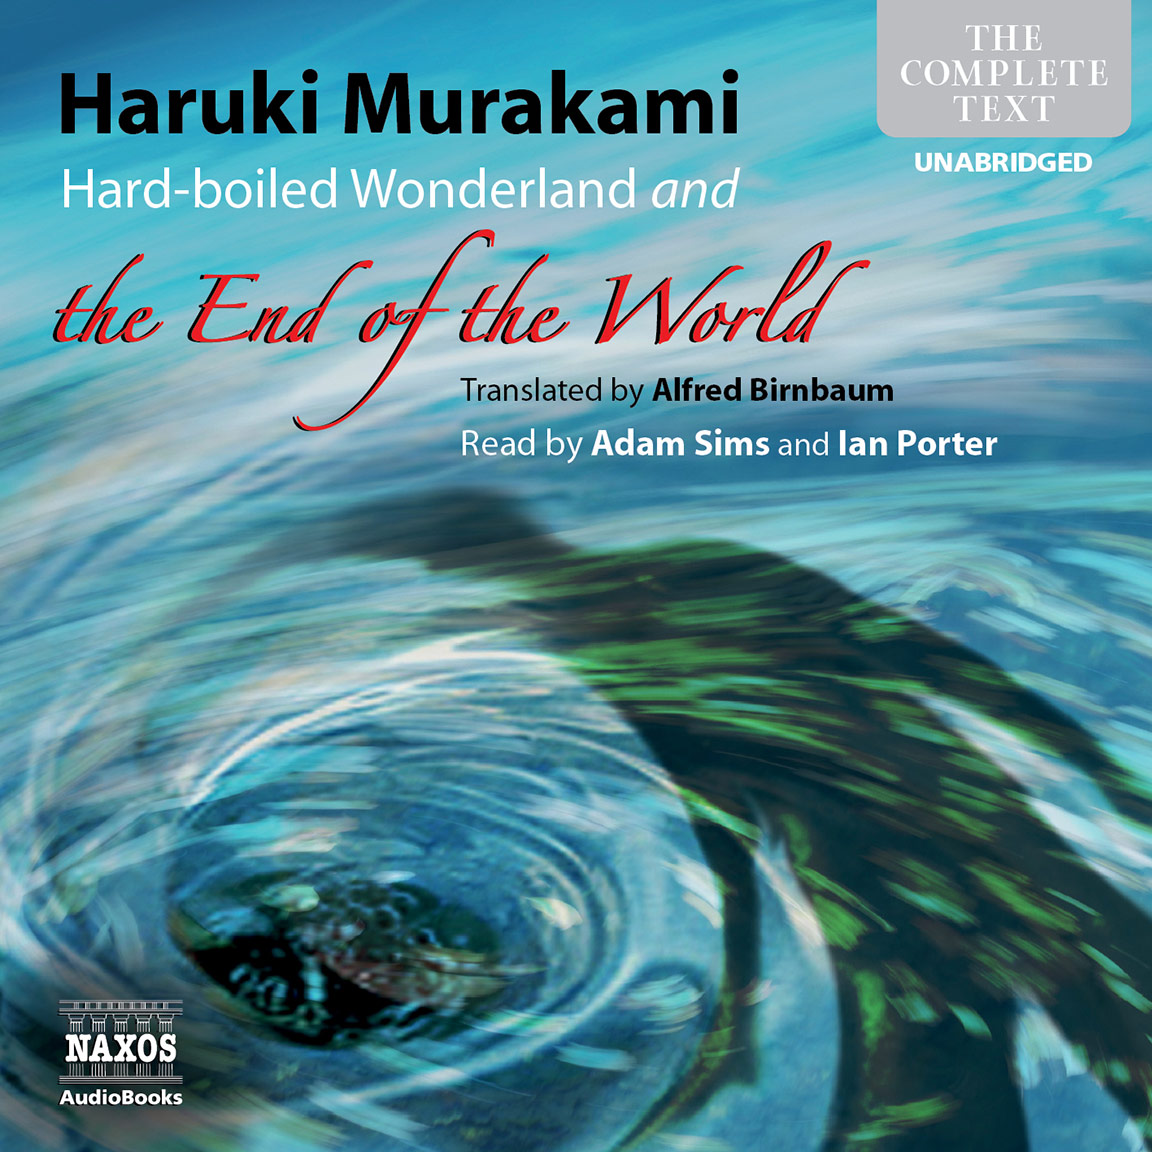 Hard-boiled Wonderland and the End of the World (unabridged)